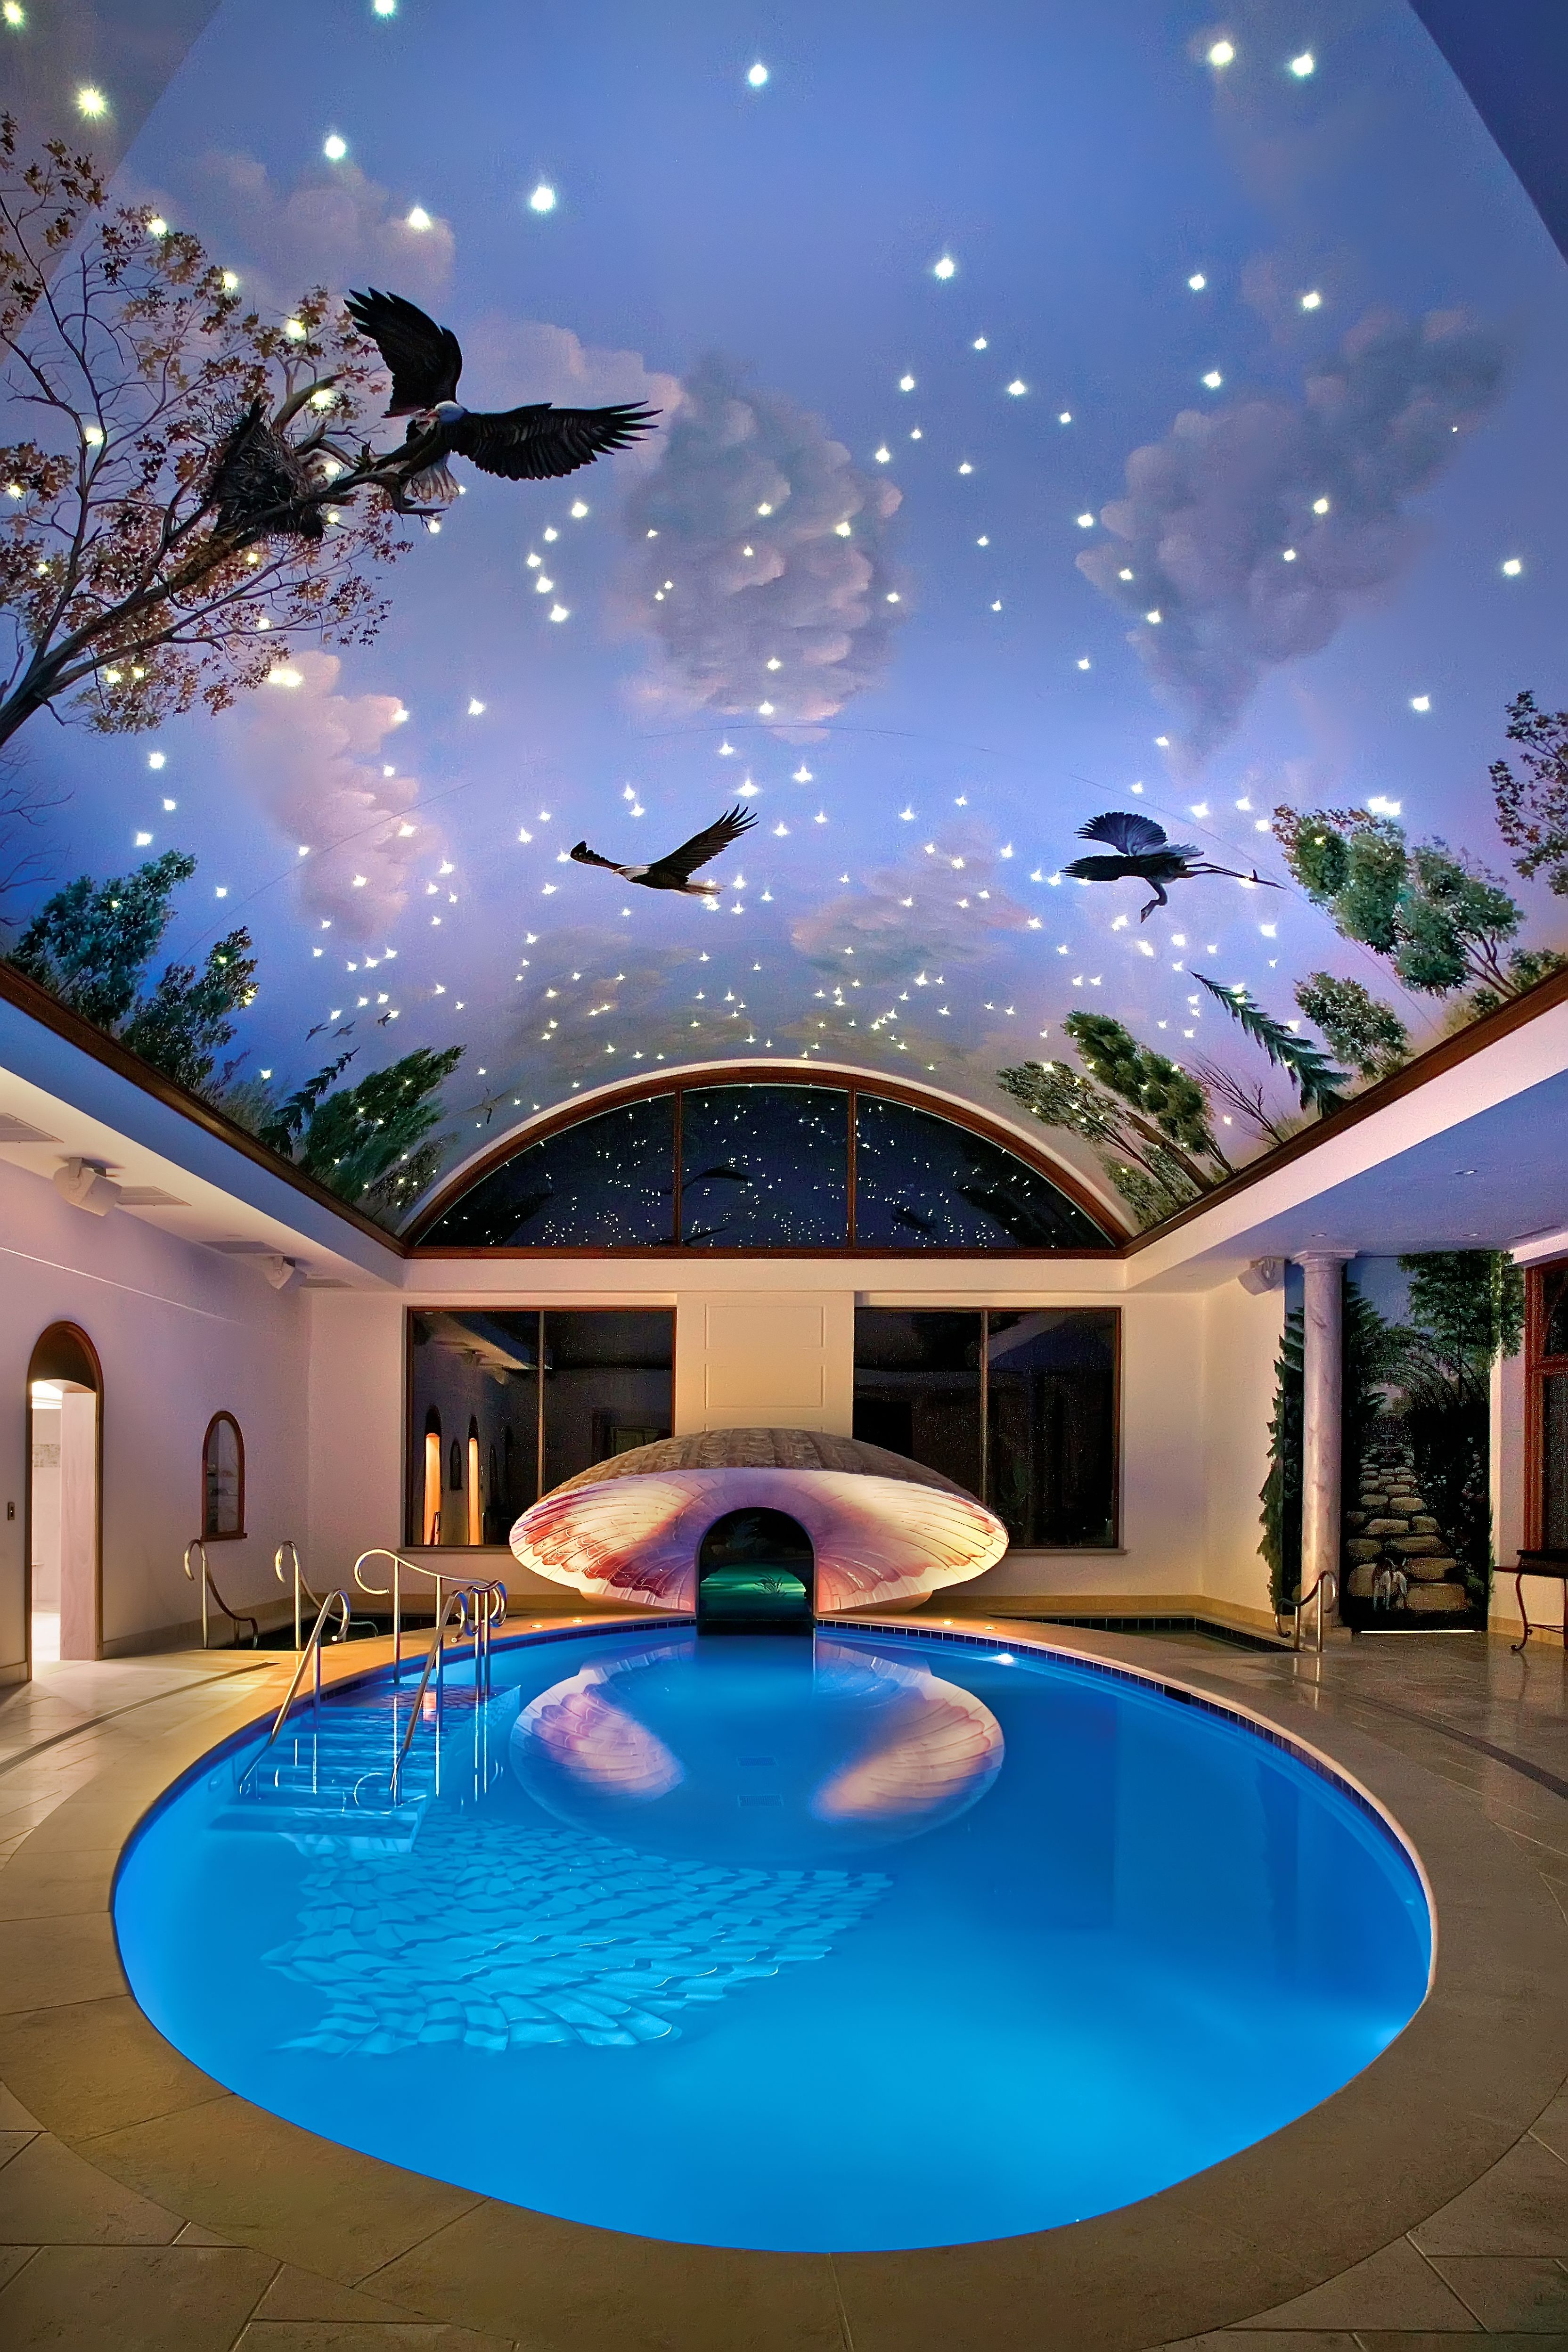 Fantasy Indoor Swimming Pool With Sky Mural Roof And Ceramic Floor Deck For Swimming  Pool House Design Ideas / Uncategorized Amazing Swimmin.